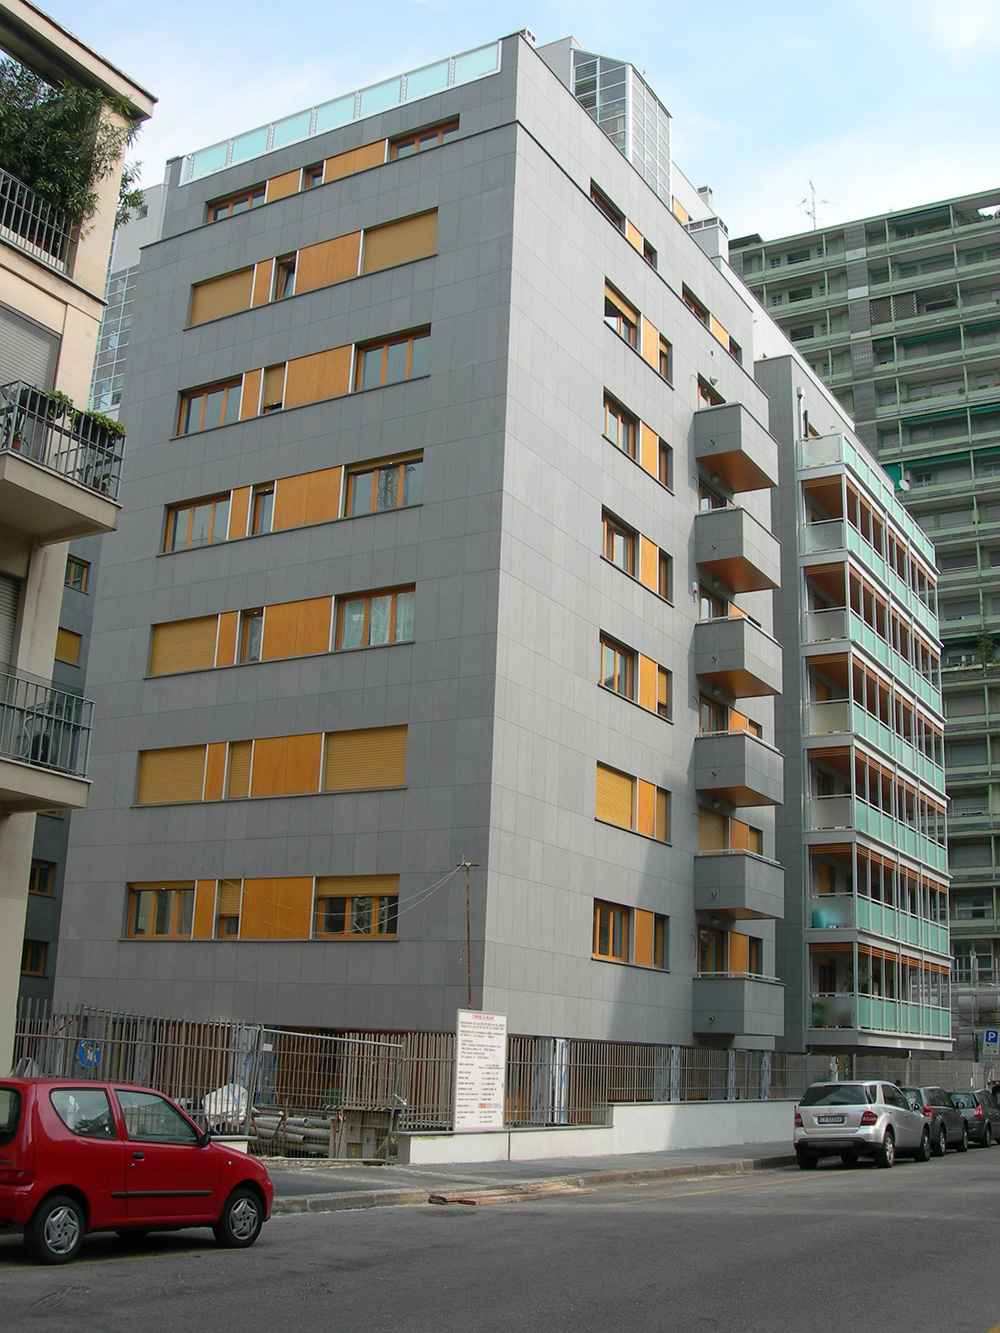 597-Edificio-Via-Filelfo-Milano-Foto-01